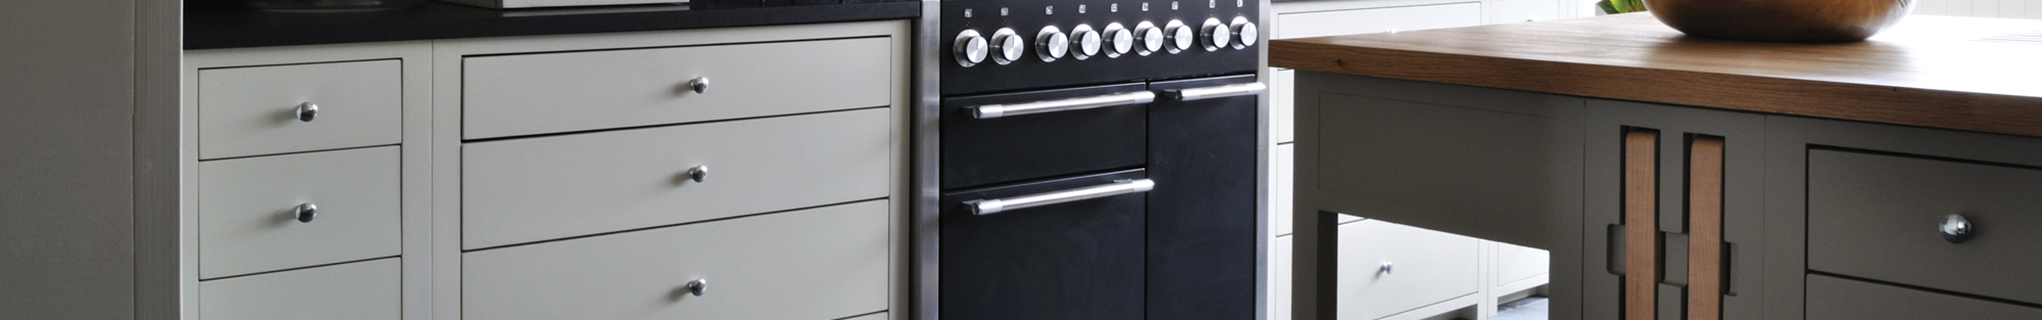 AGA Mercury cooker